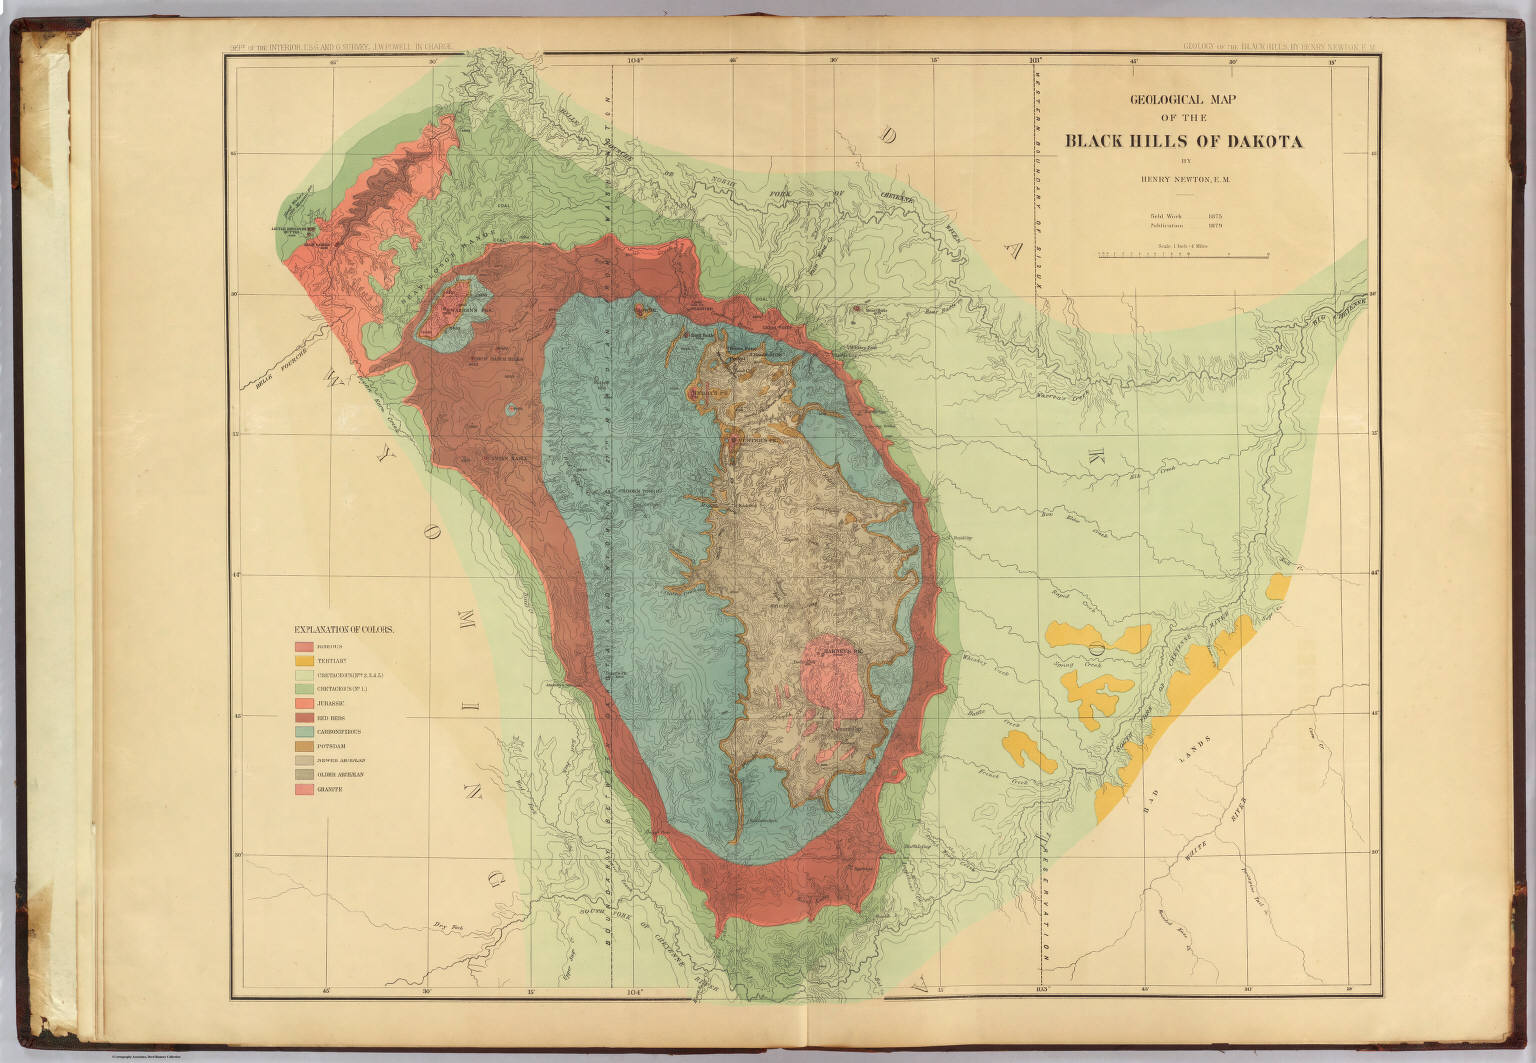 Geological map of the Black Hills of Dakota David Rumsey